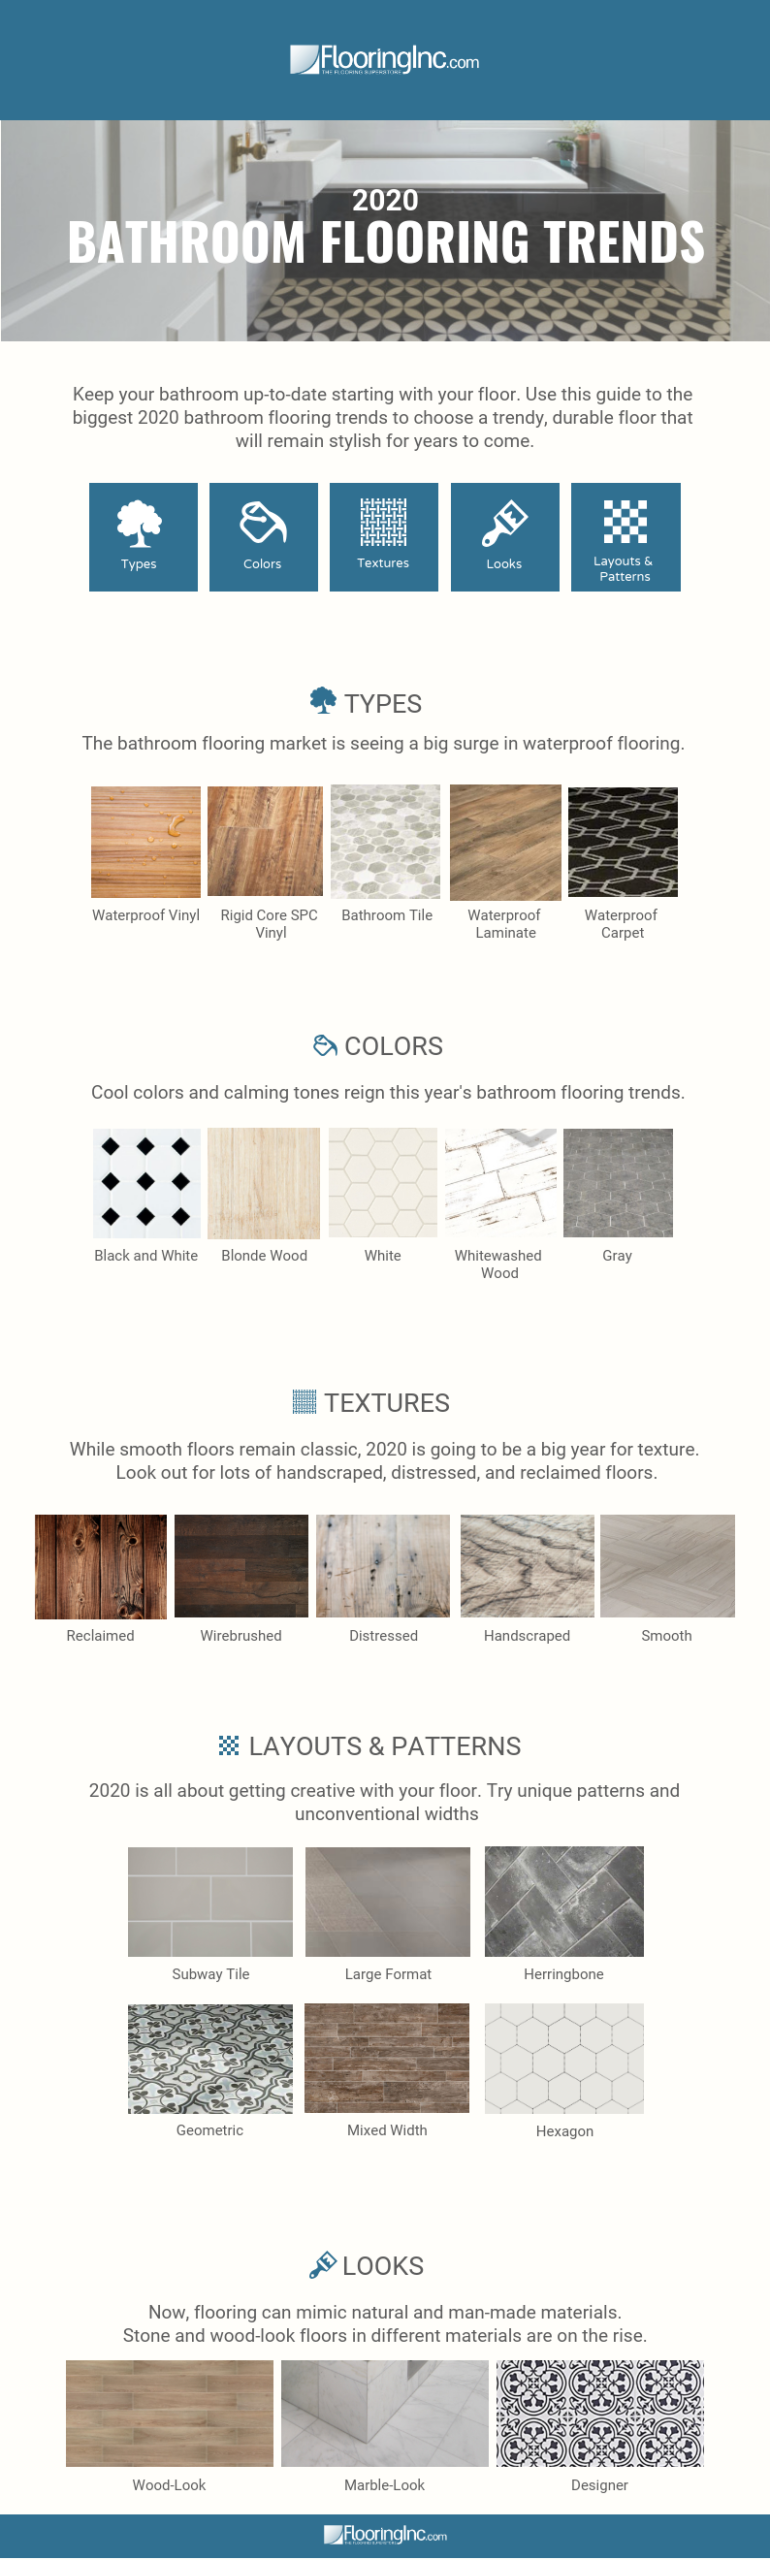 Best Paint Colors For Bathrooms 2020 Images Png Format